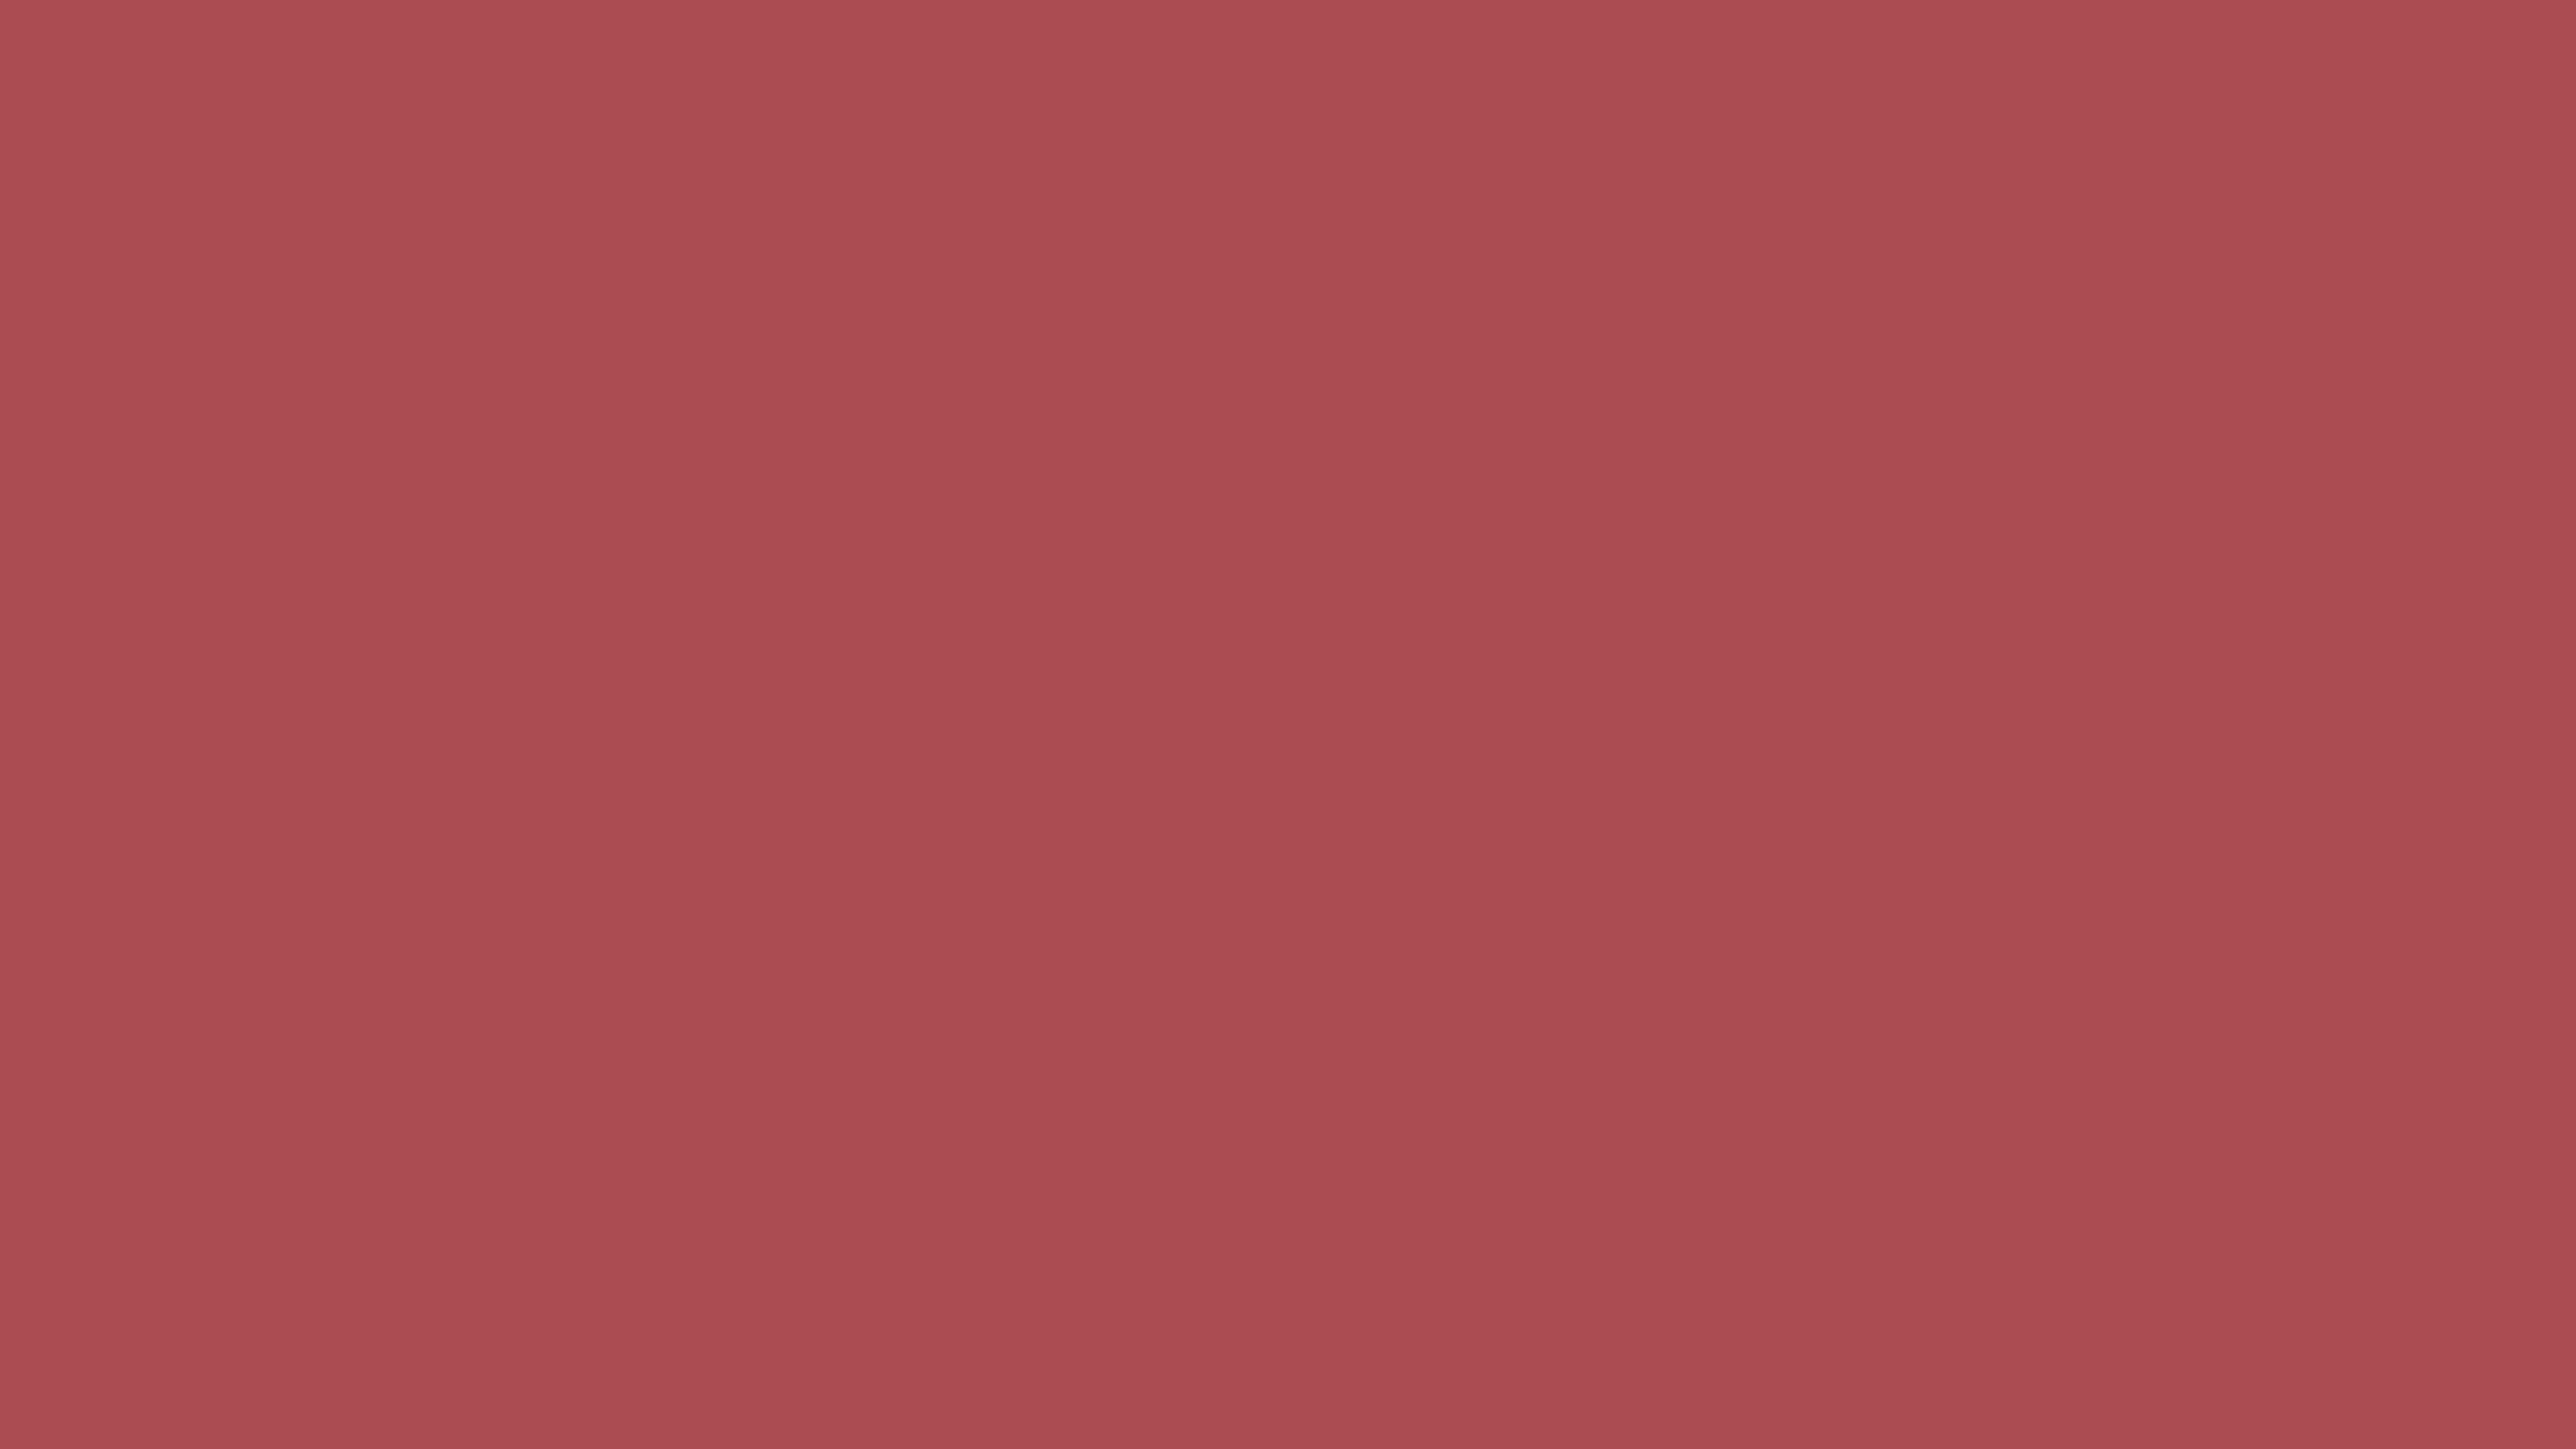 5120x2880 English Red Solid Color Background